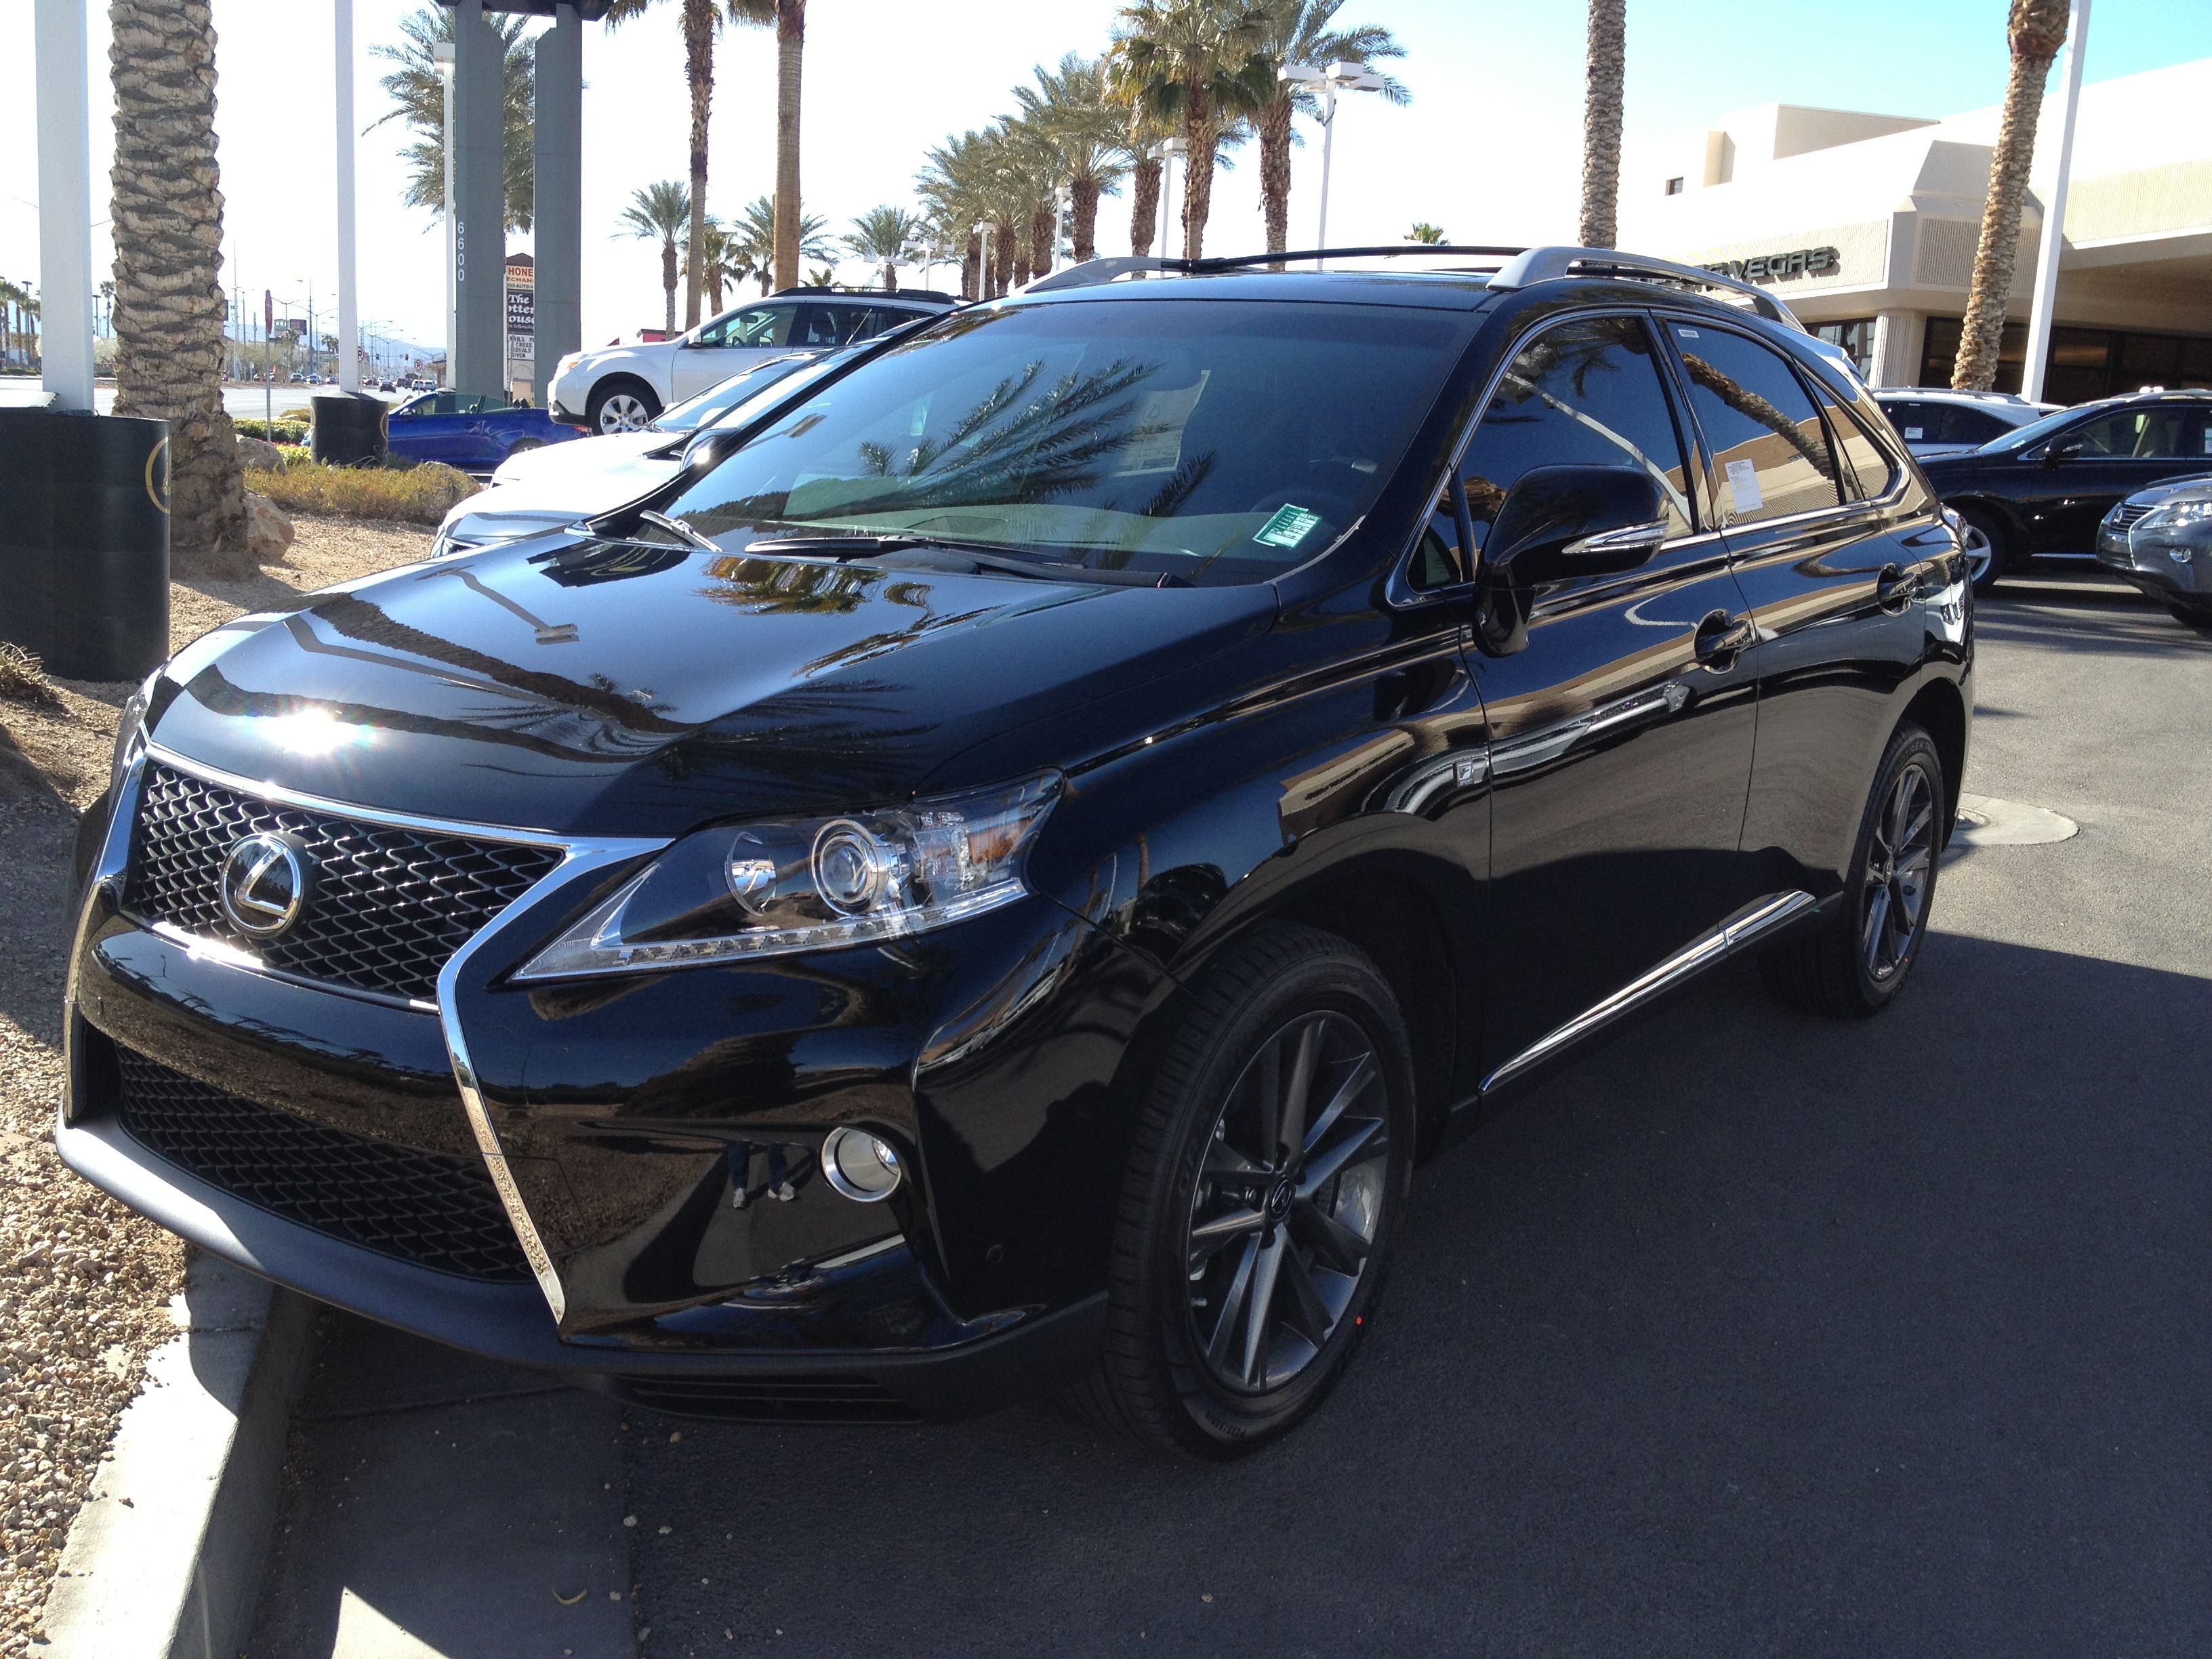 Lexus RX350 Black with black rims My dream vehicle